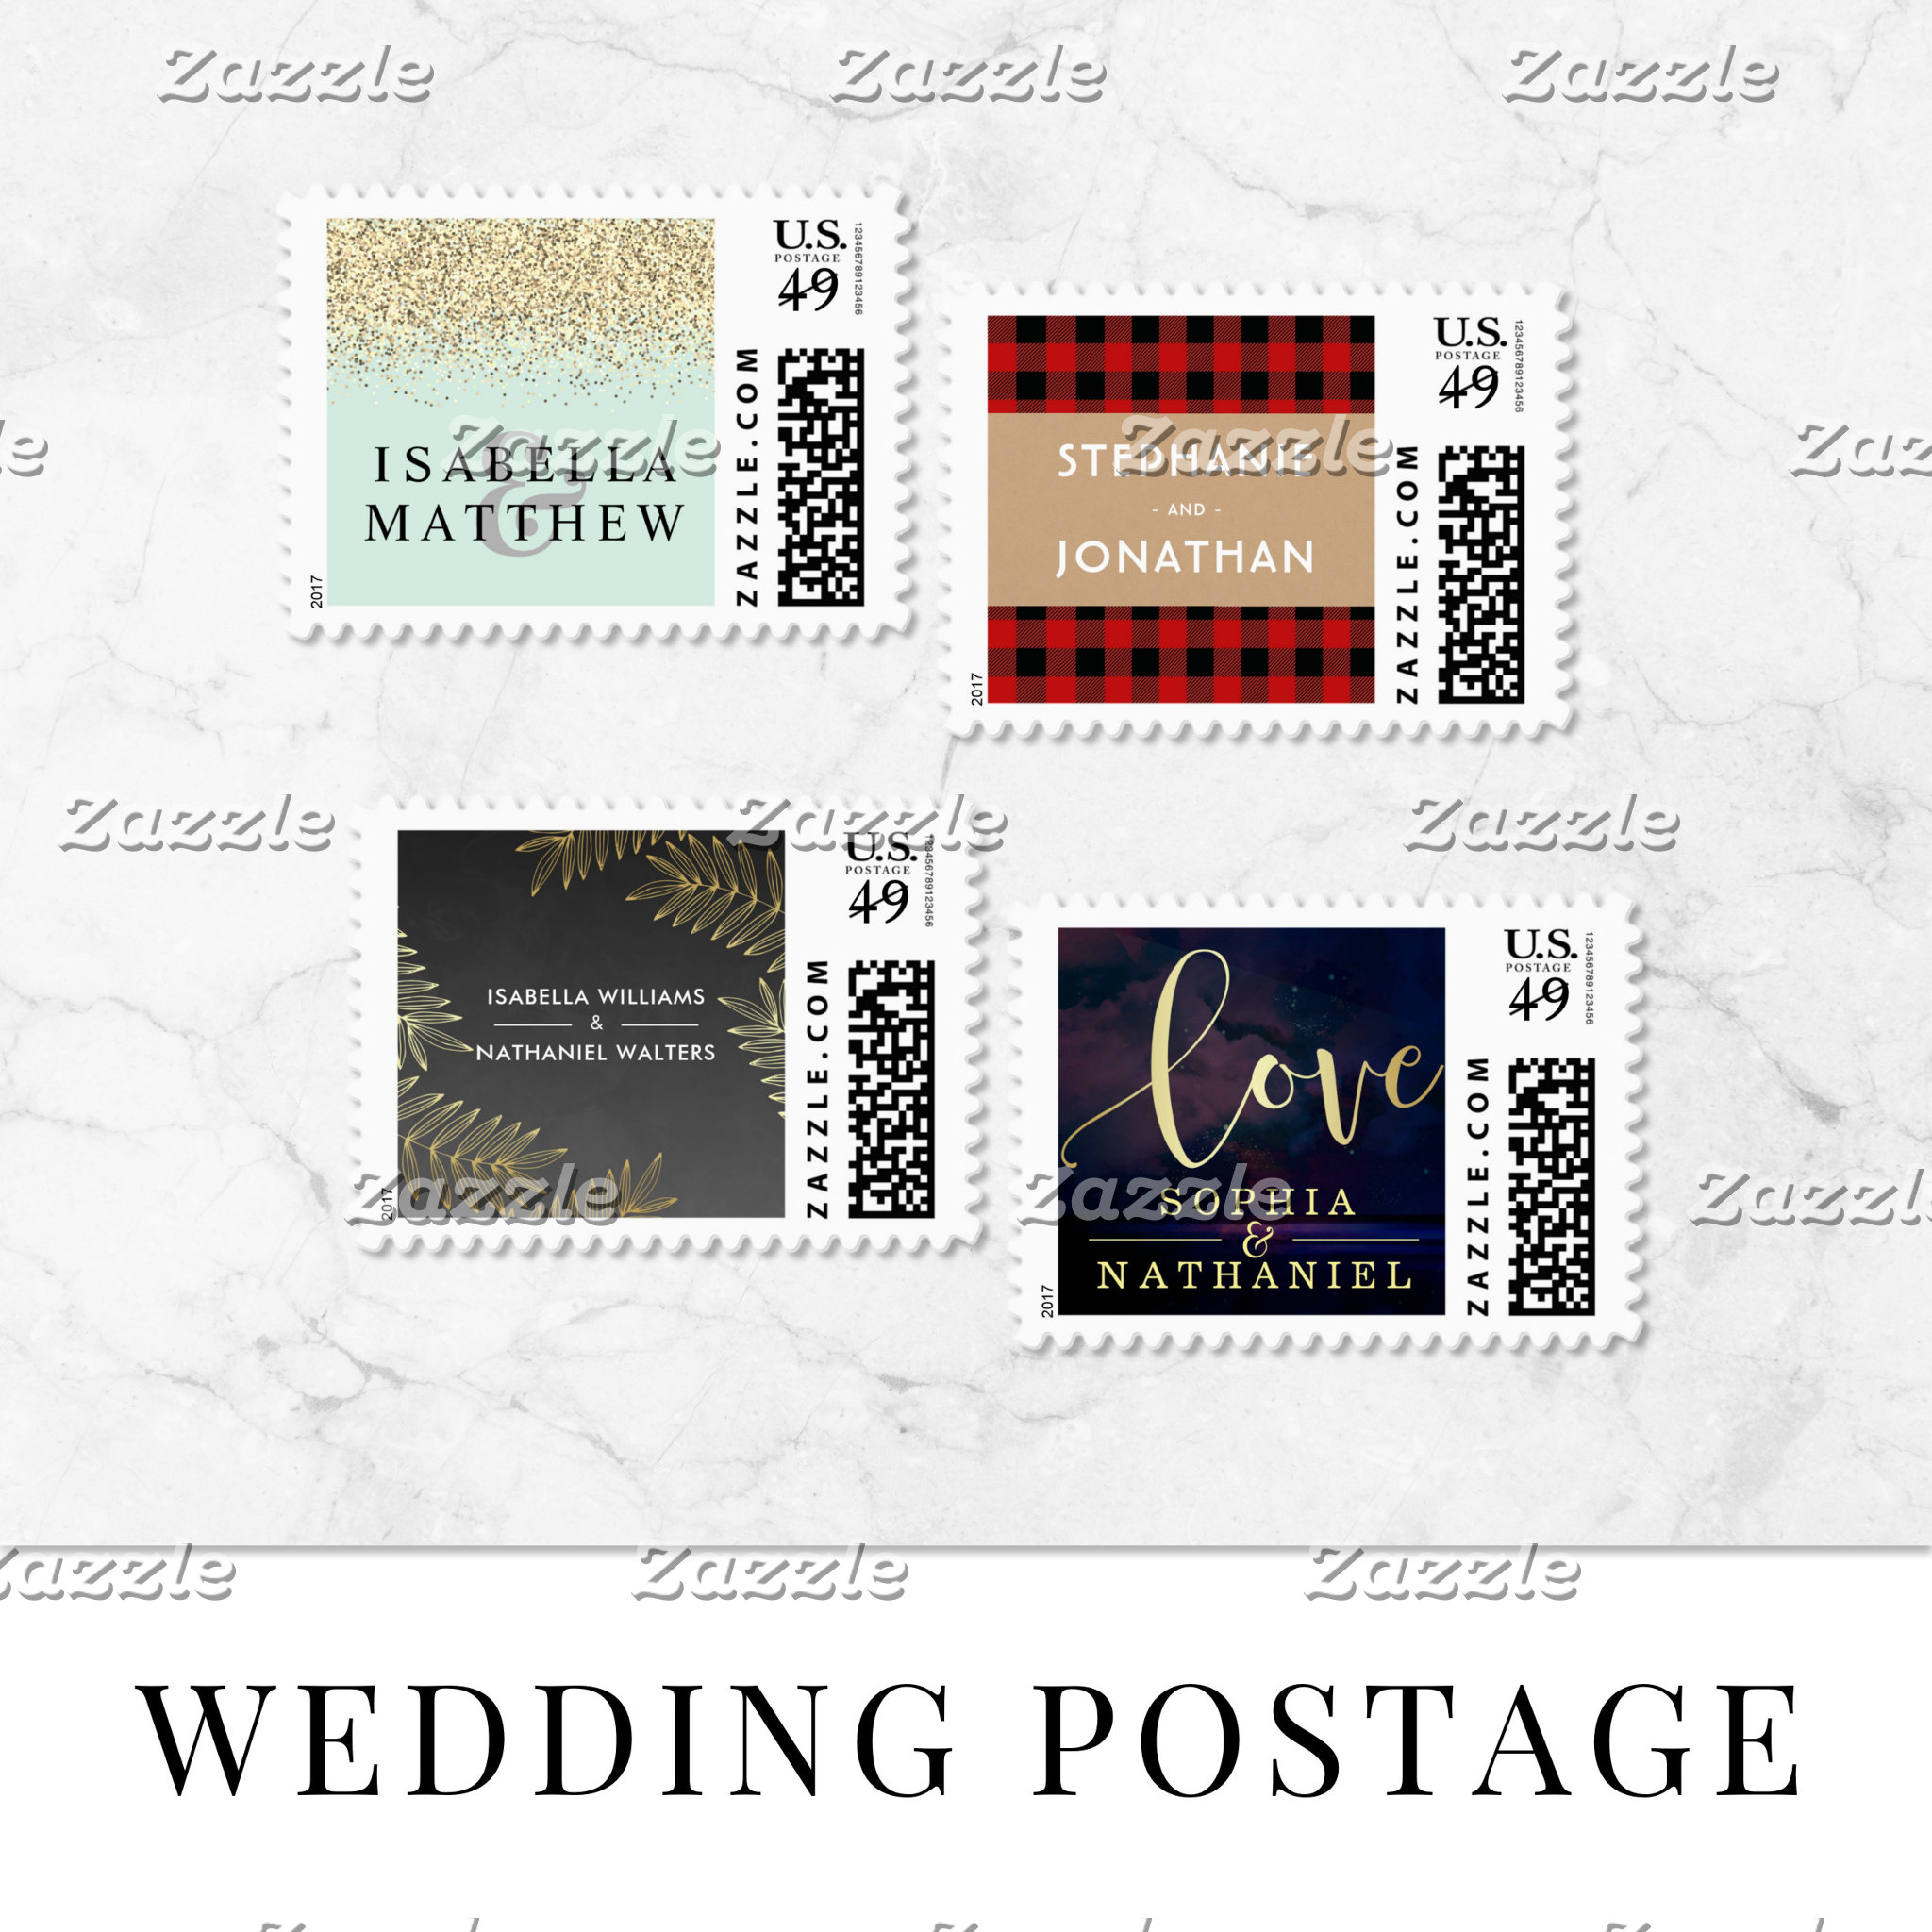 Wedding Postage